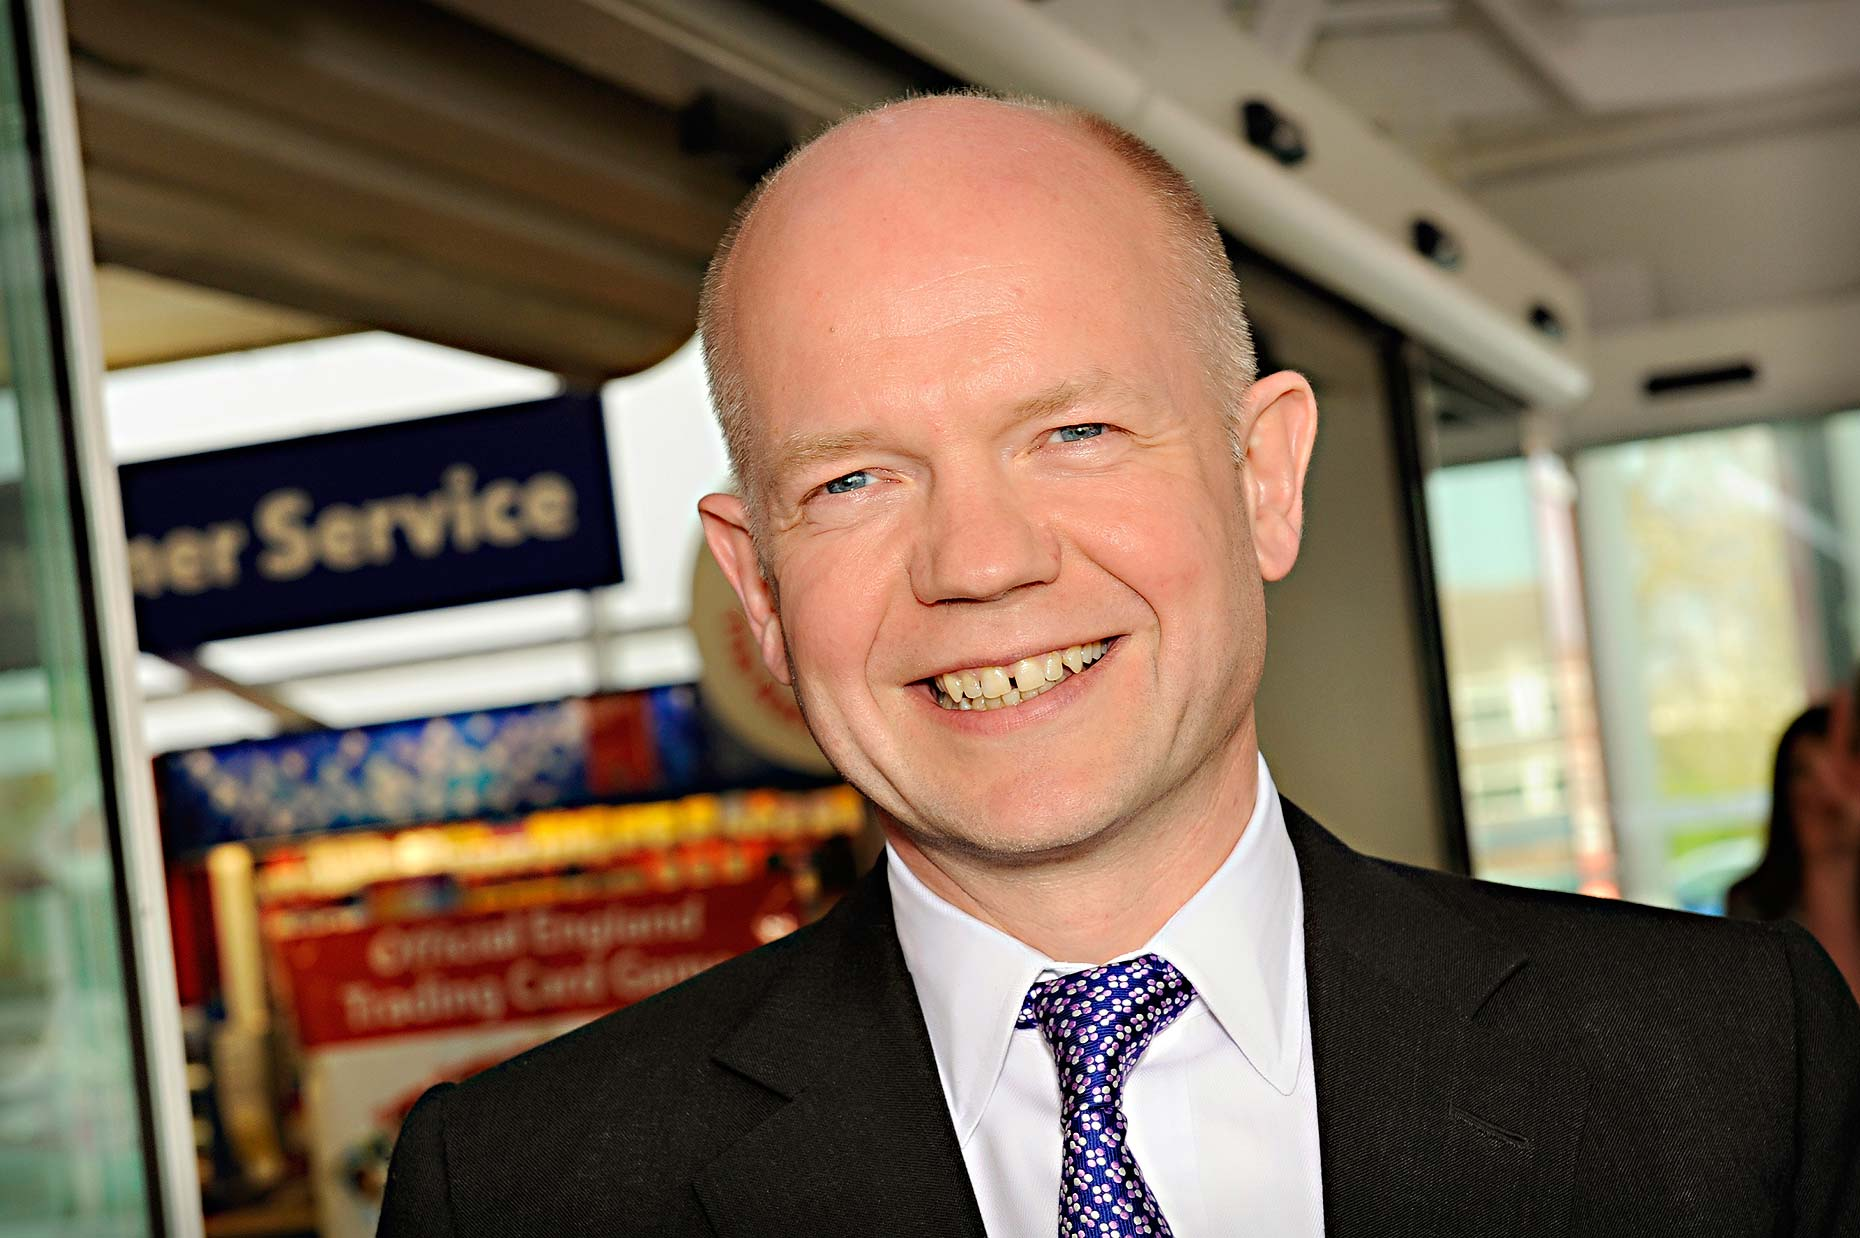 0972 William-Hague-MP-PR-and-Corporate.jpg